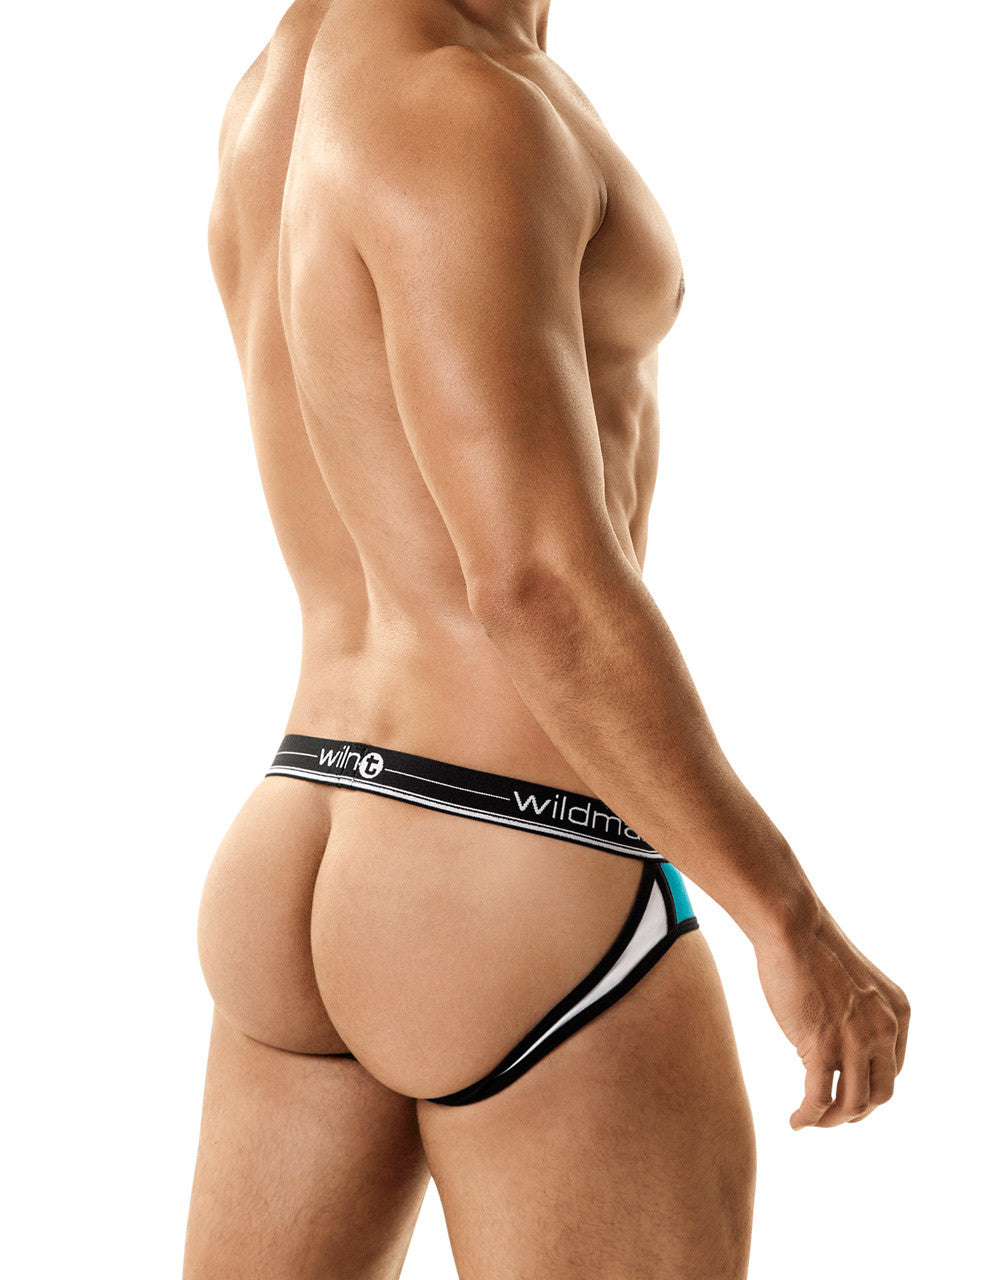 Variety 3 Pack WildmanT Apollo Jock With Cock Ring Red